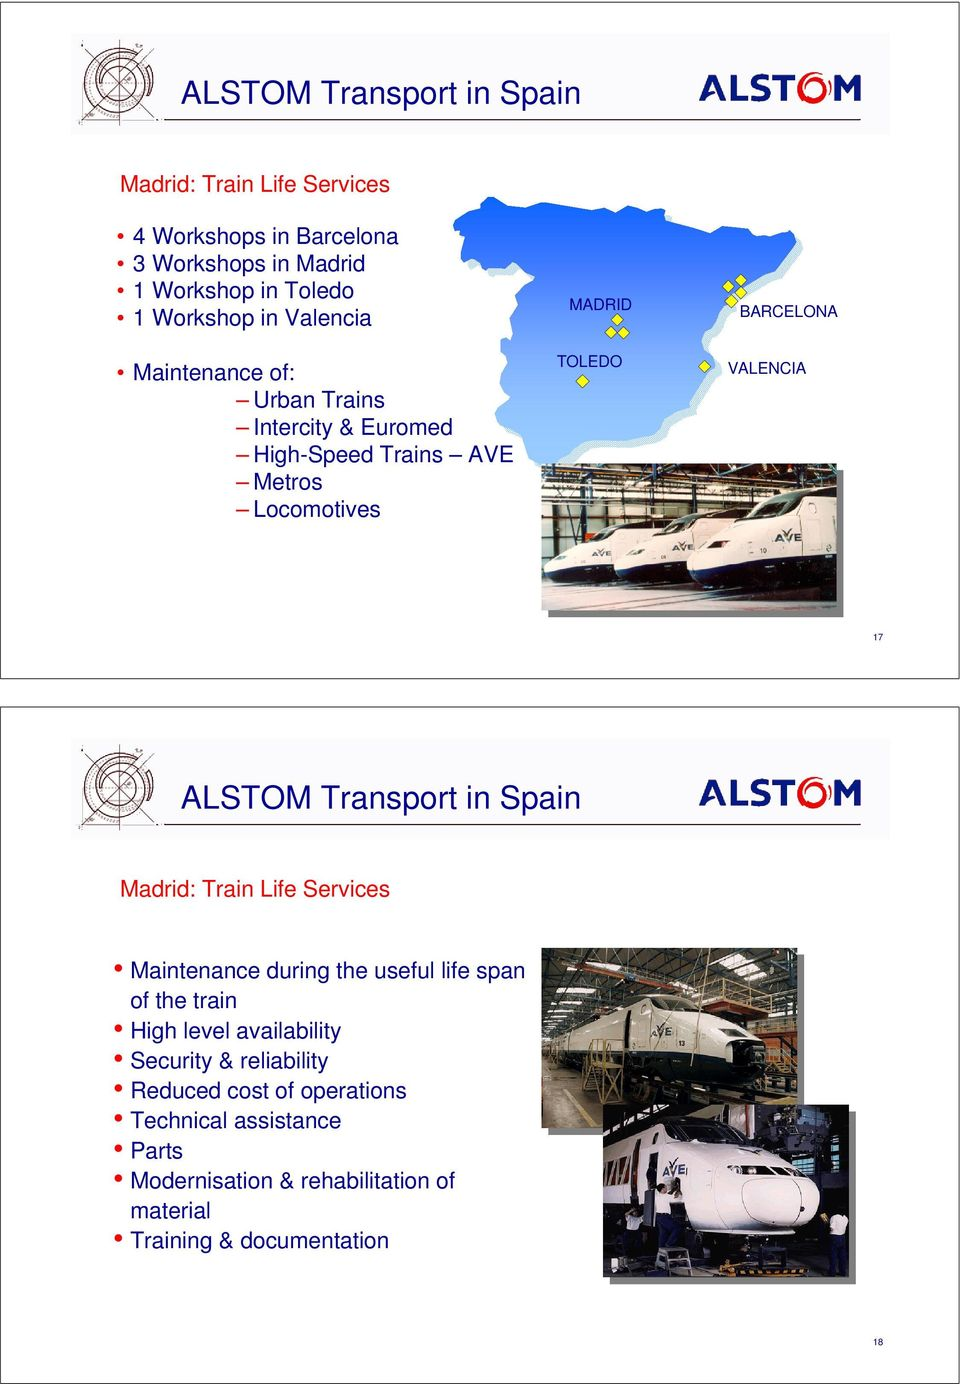 ALSTOM Transport in Spain Madrid: Train Life Services Maintenance during the useful life span of the train High level availability